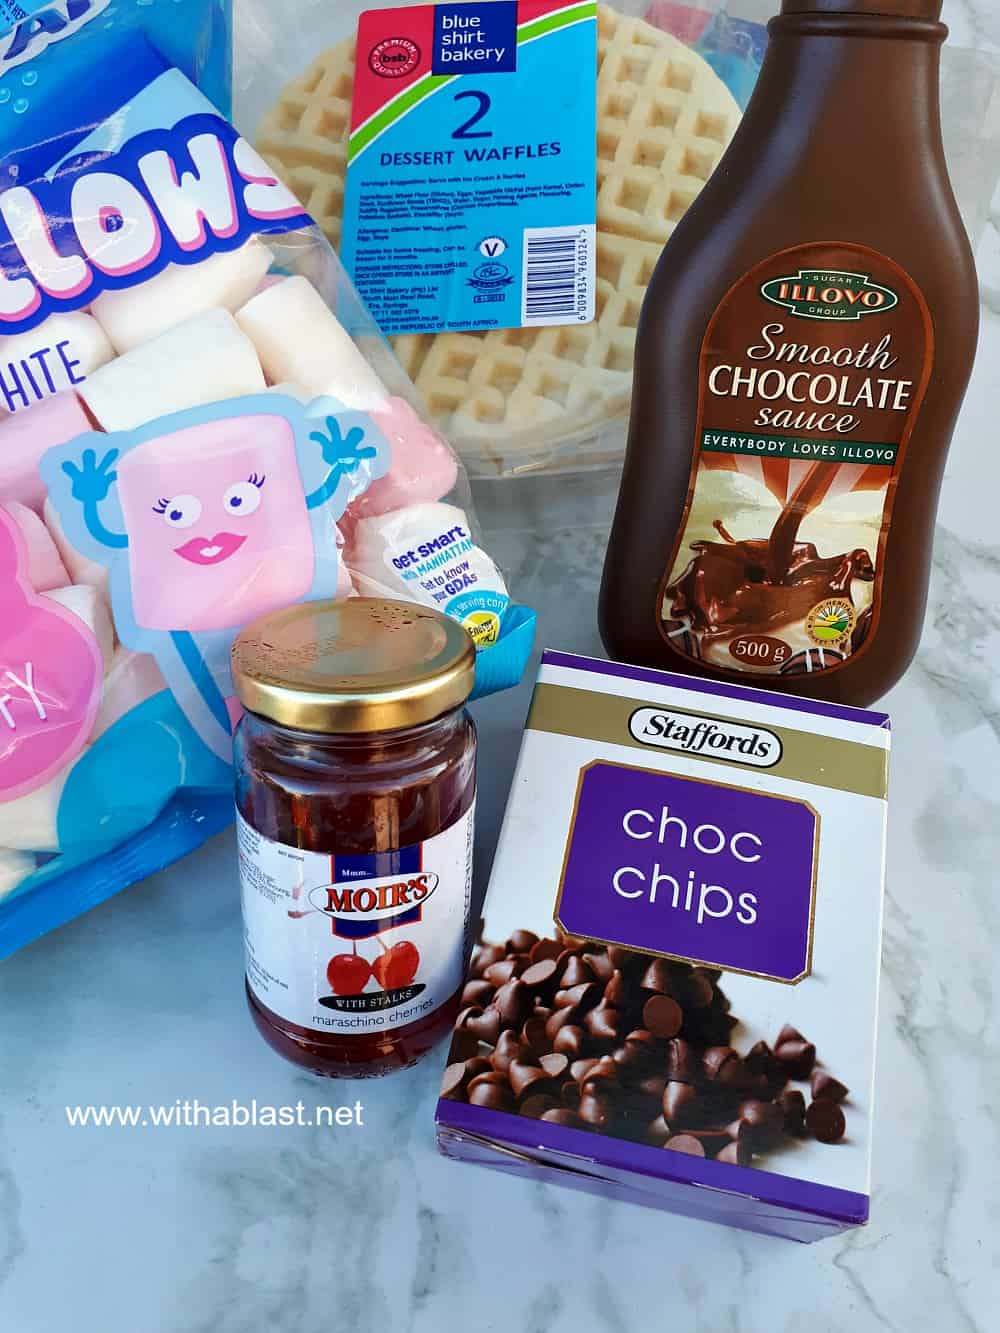 Waffle S'mores For Dessert - Ingredients